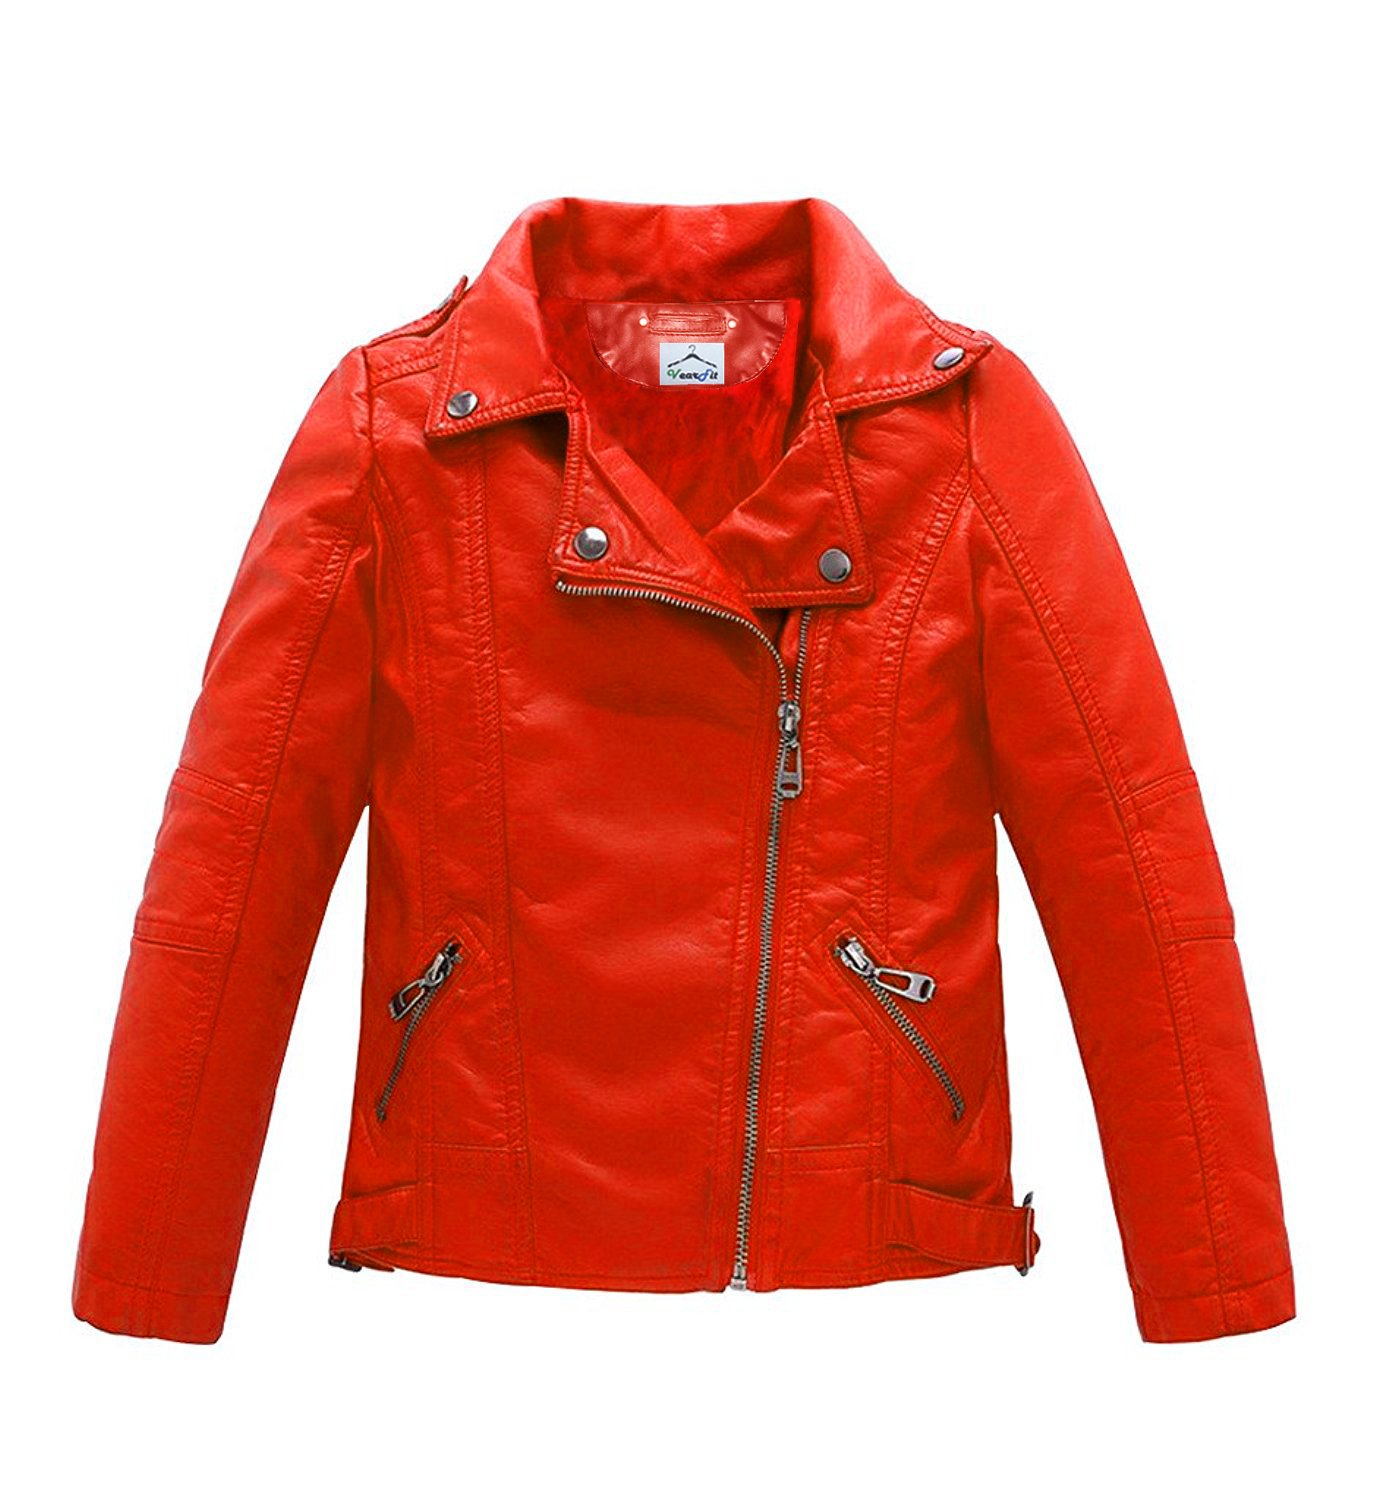 VearFit Trango Red Girls Kids Todller Real Leather Jacket, 1-2-Year, Red by VearFit